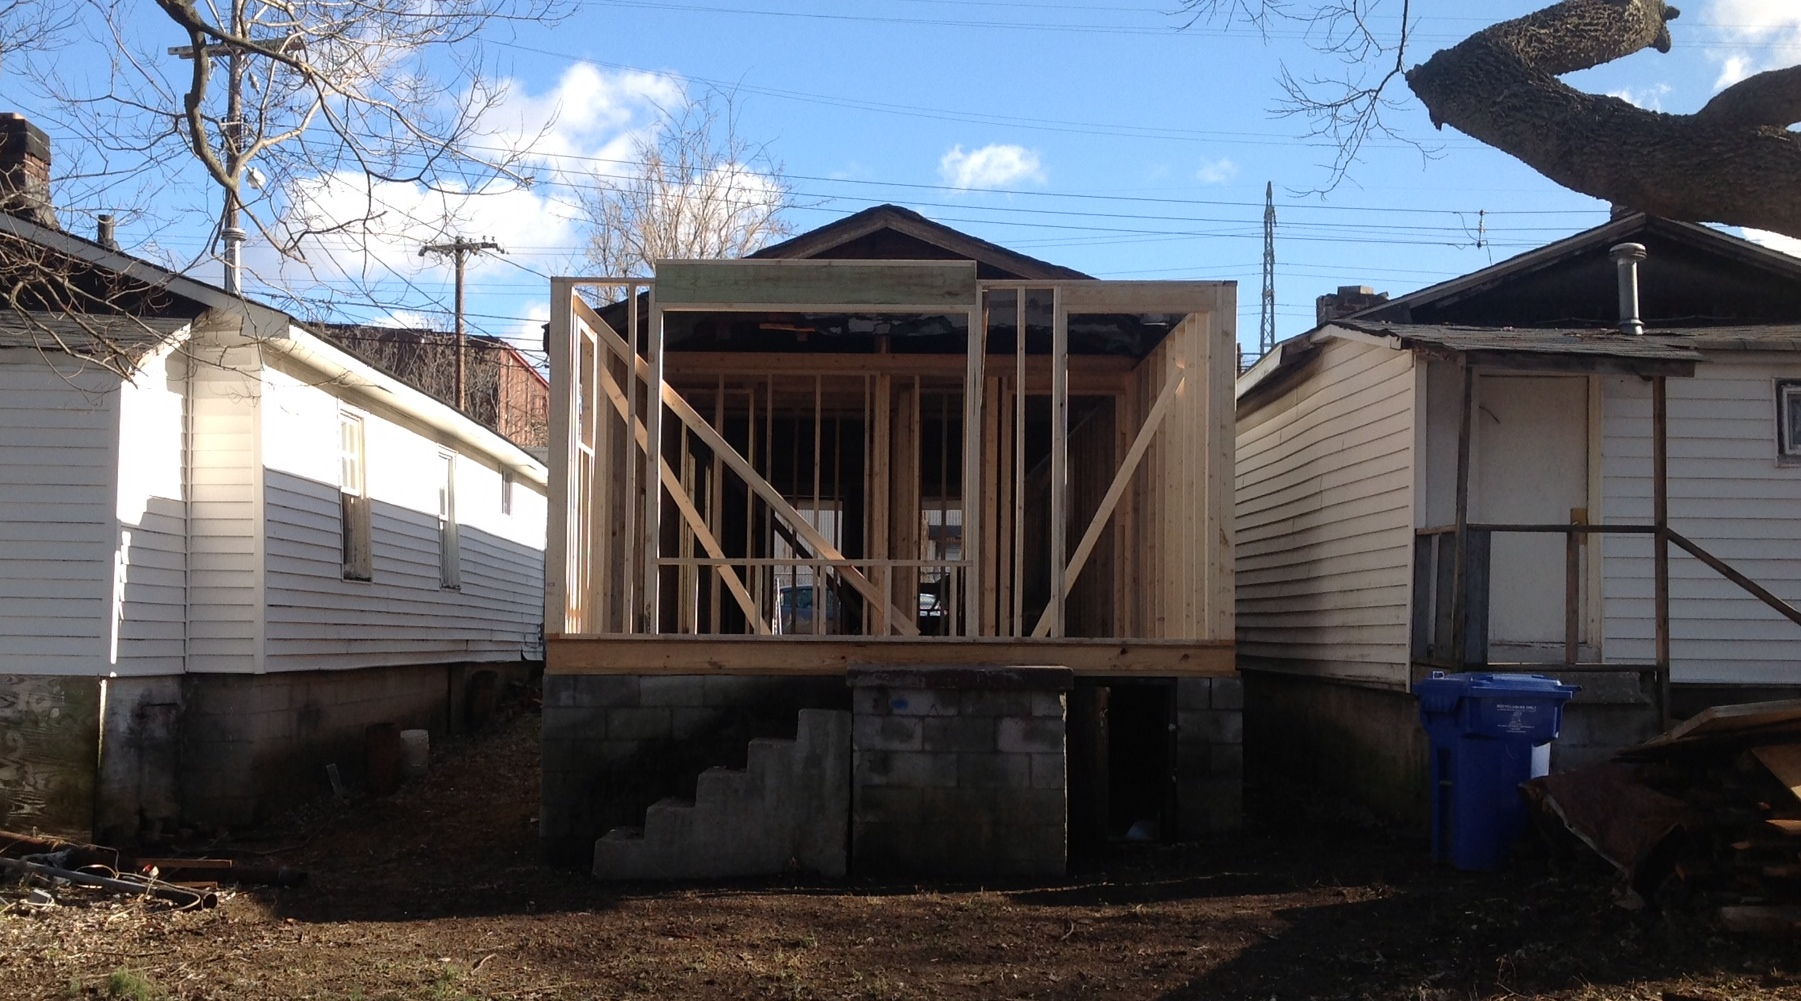 138 York St. - In Process